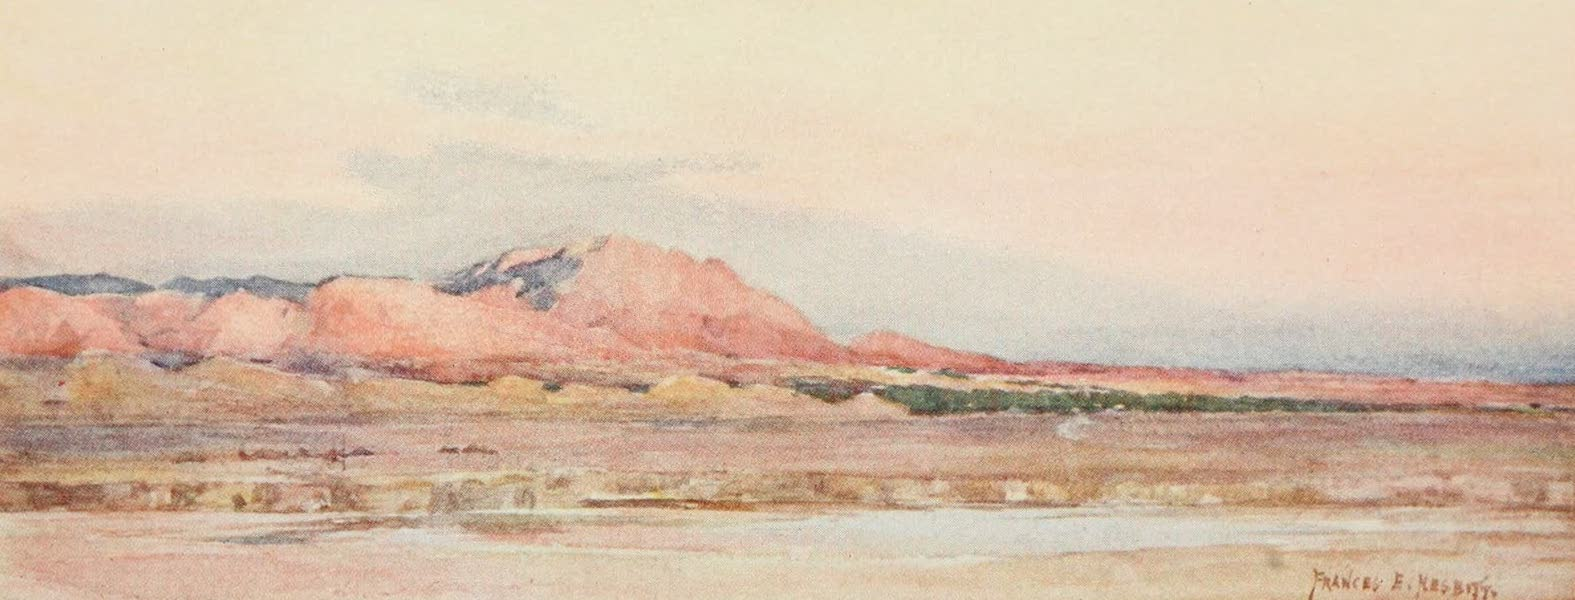 Algeria and Tunis, Painted and Described - Evening on the Sahara (1906)